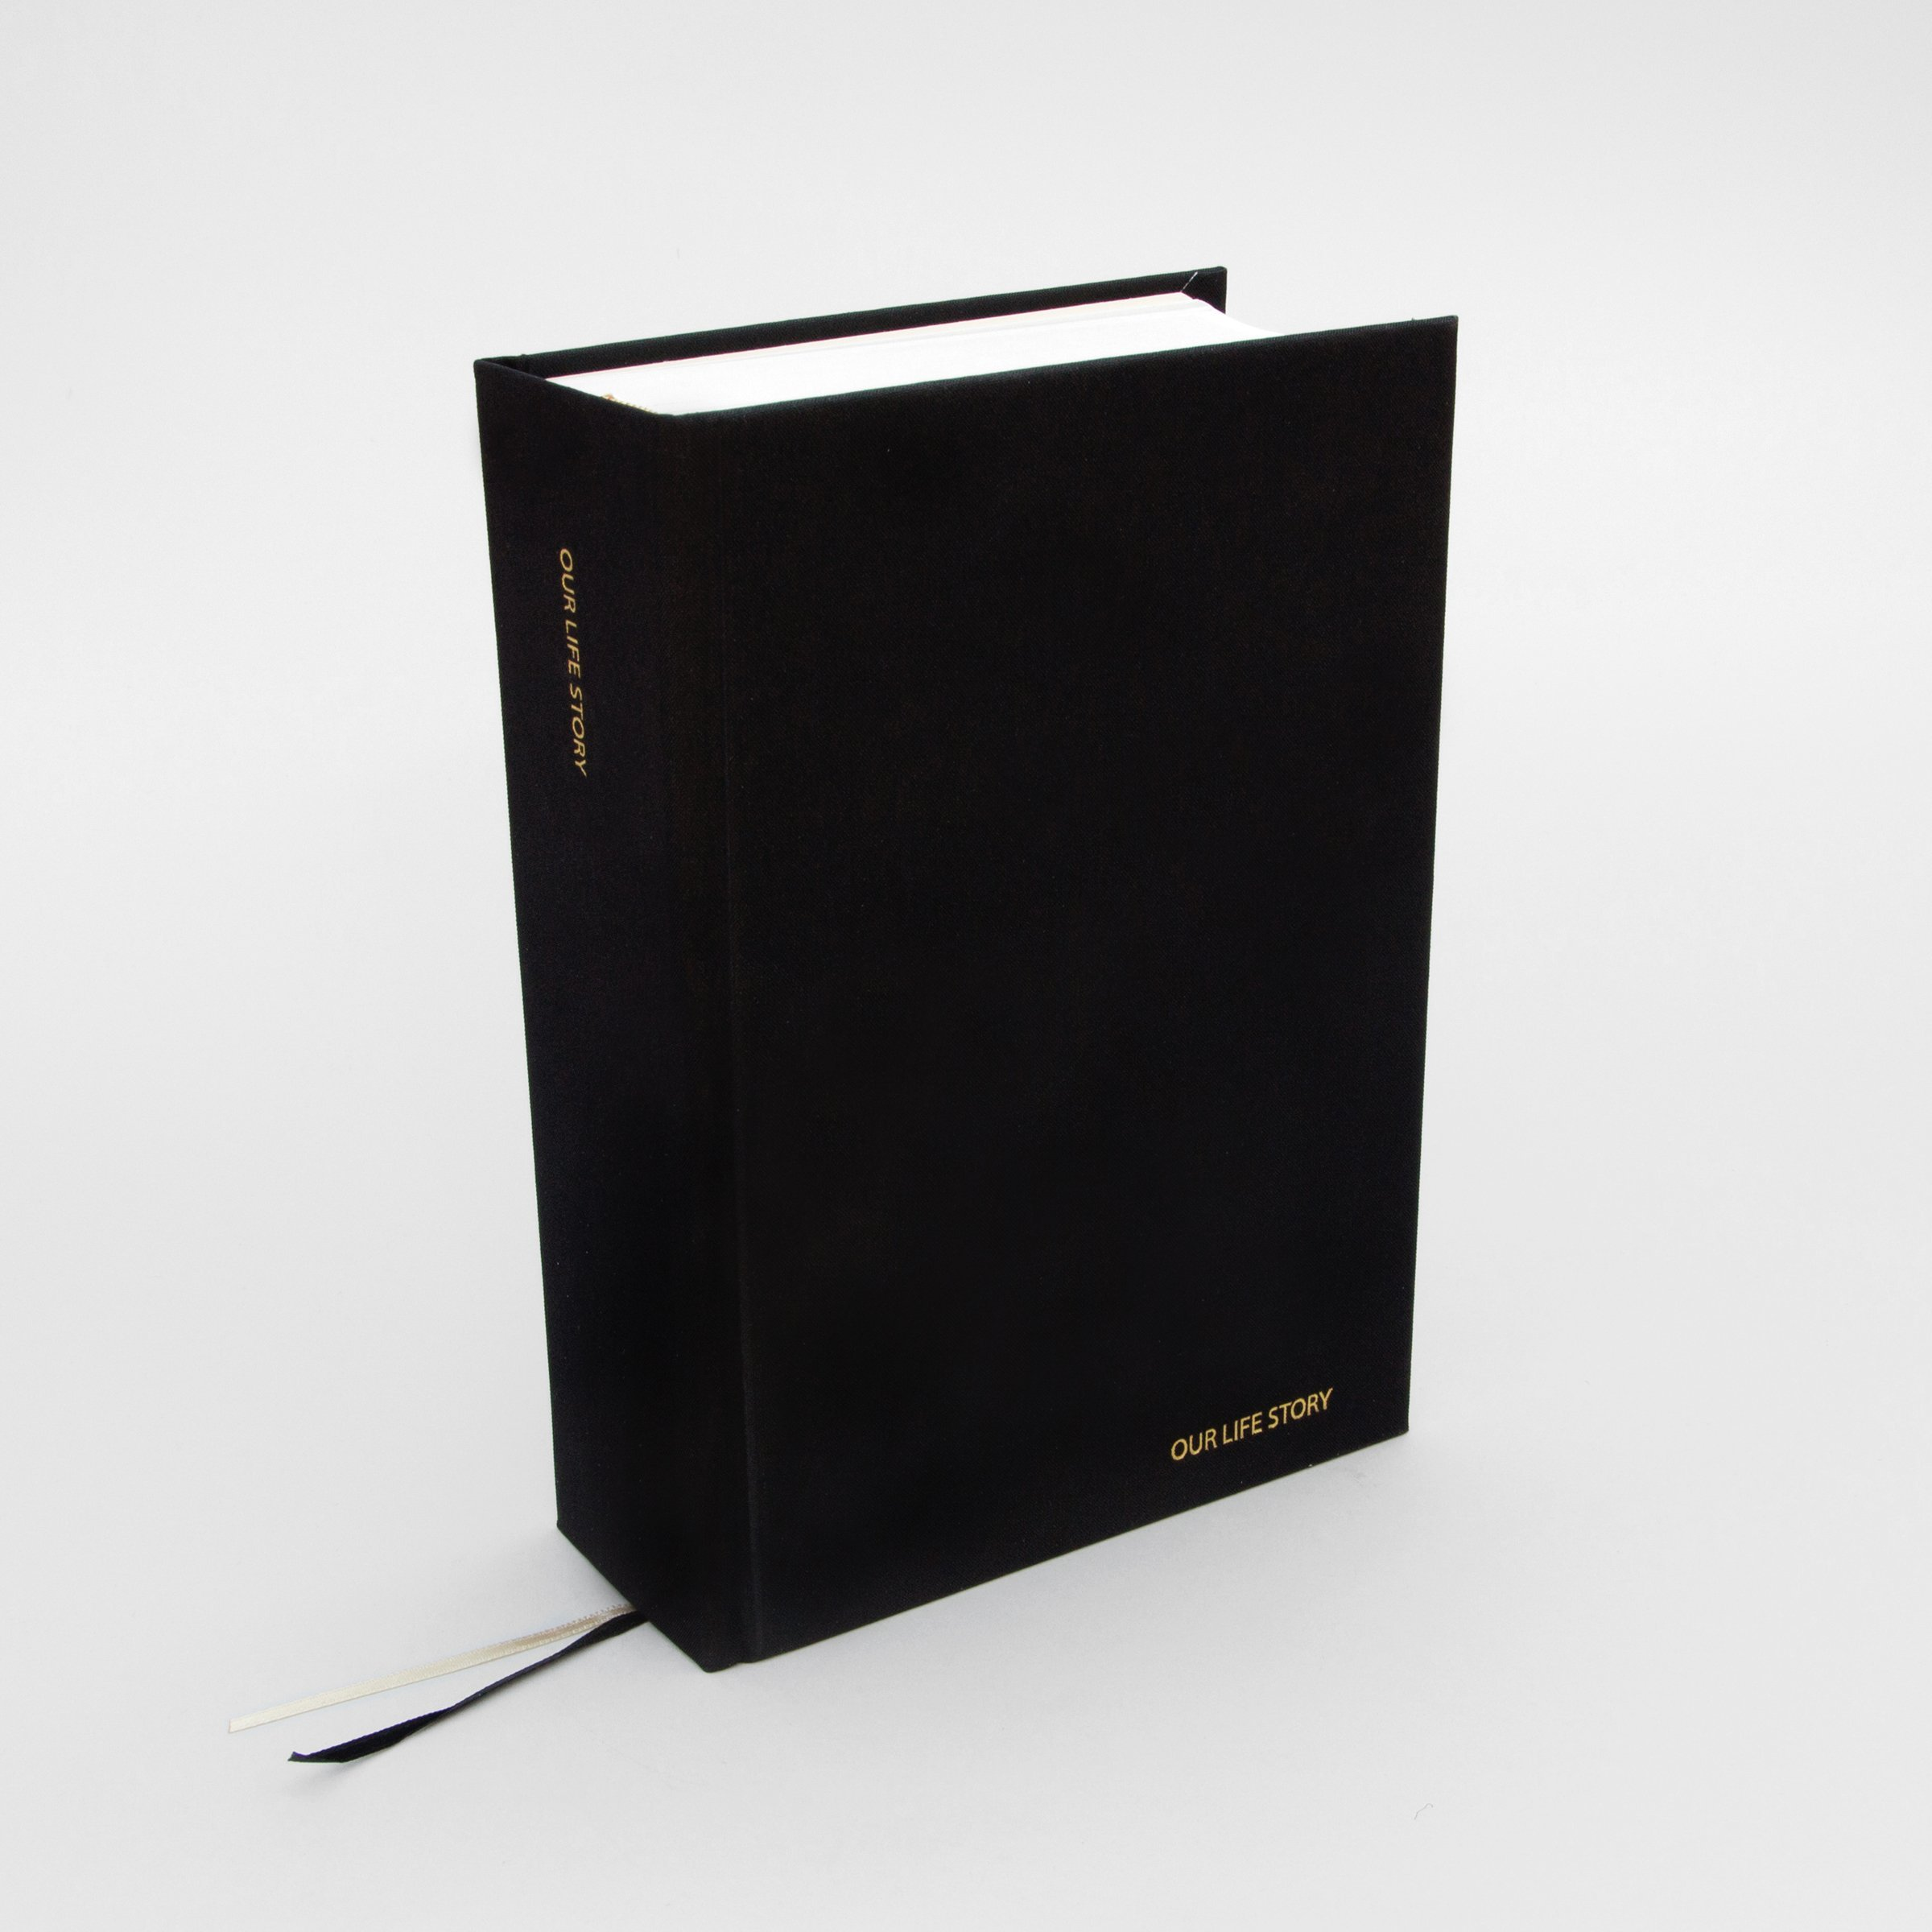 Black Our Life Story fabric bound journal